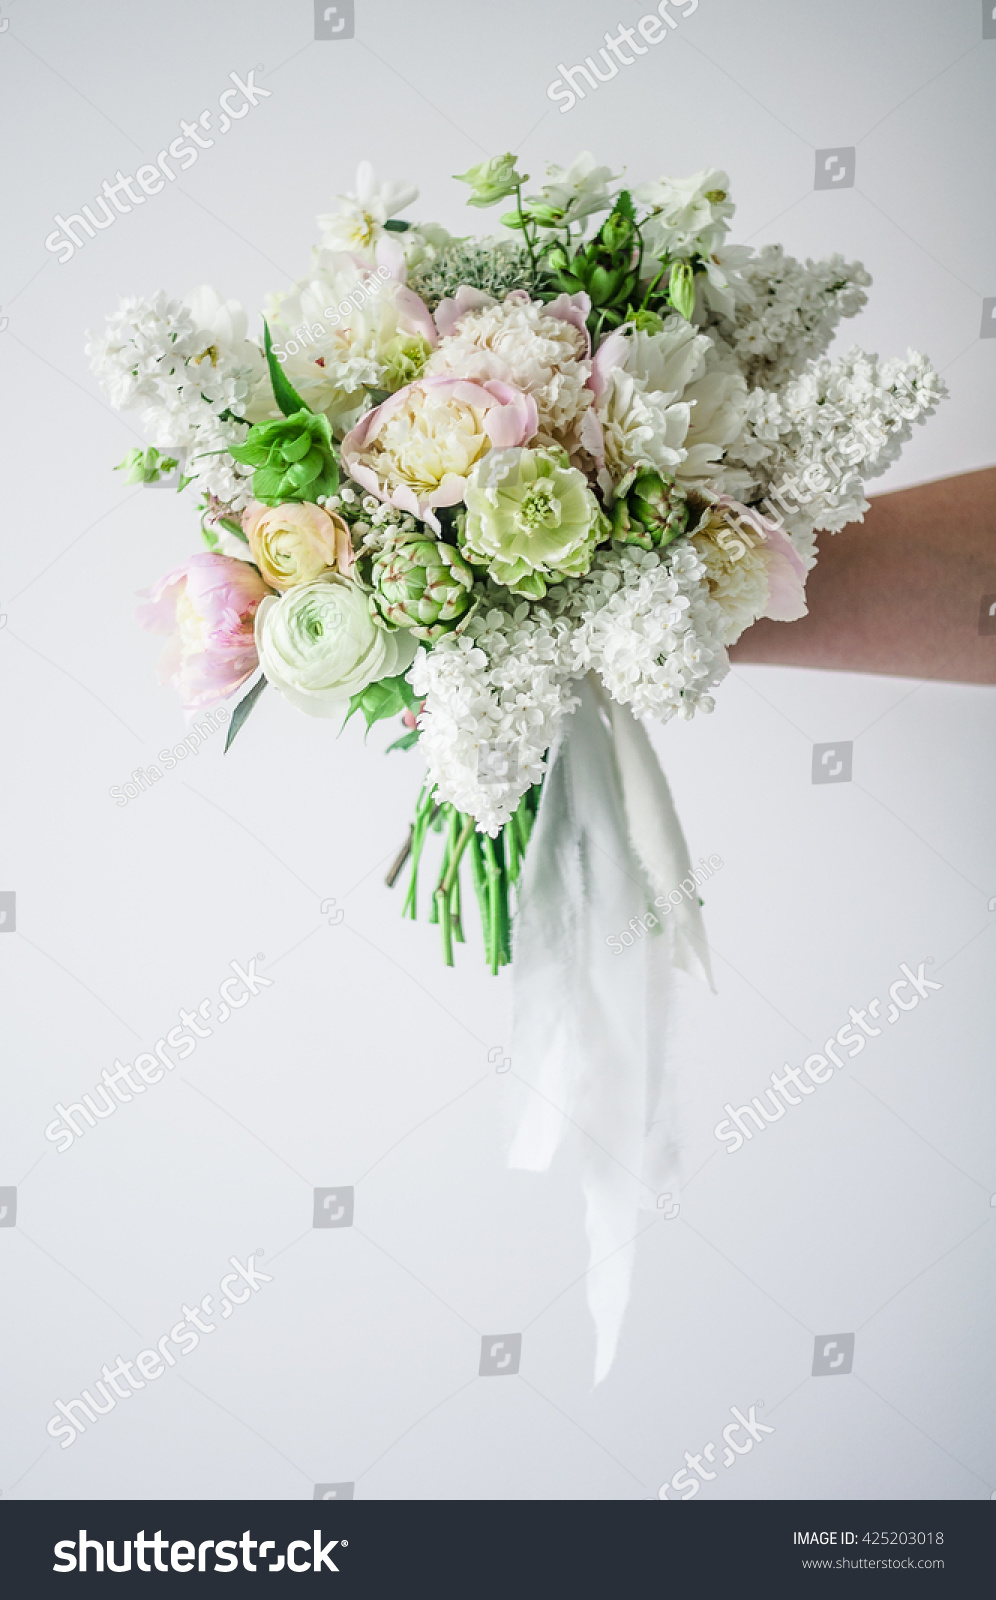 Wedding Bouquet Wedding Bouquet Green Flowers Stock Photo Edit Now